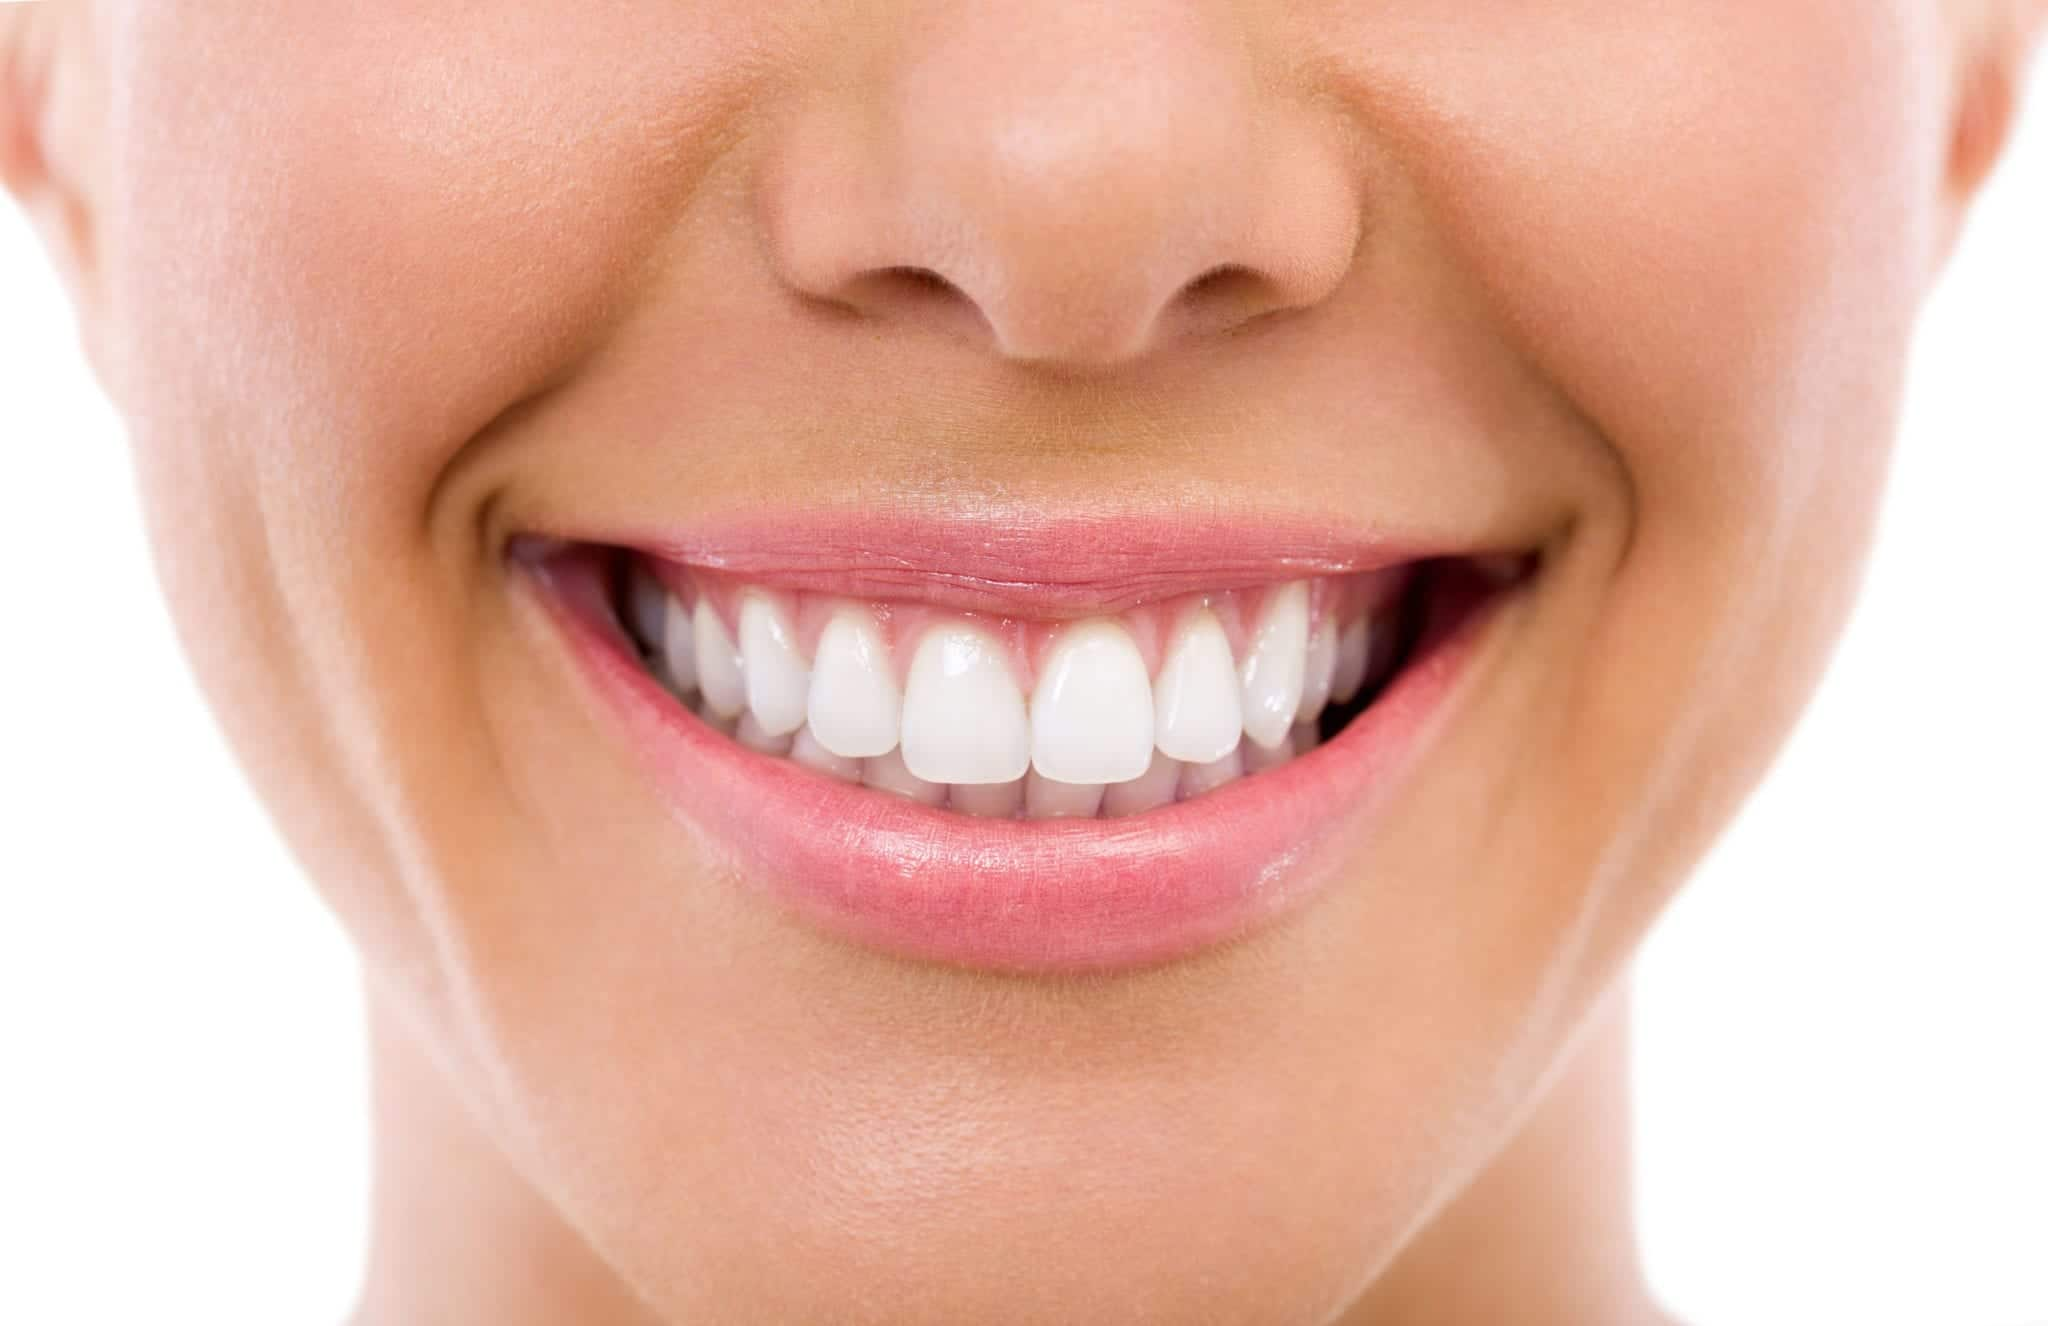 Talk To Your Dentist About Tooth Whitening Products